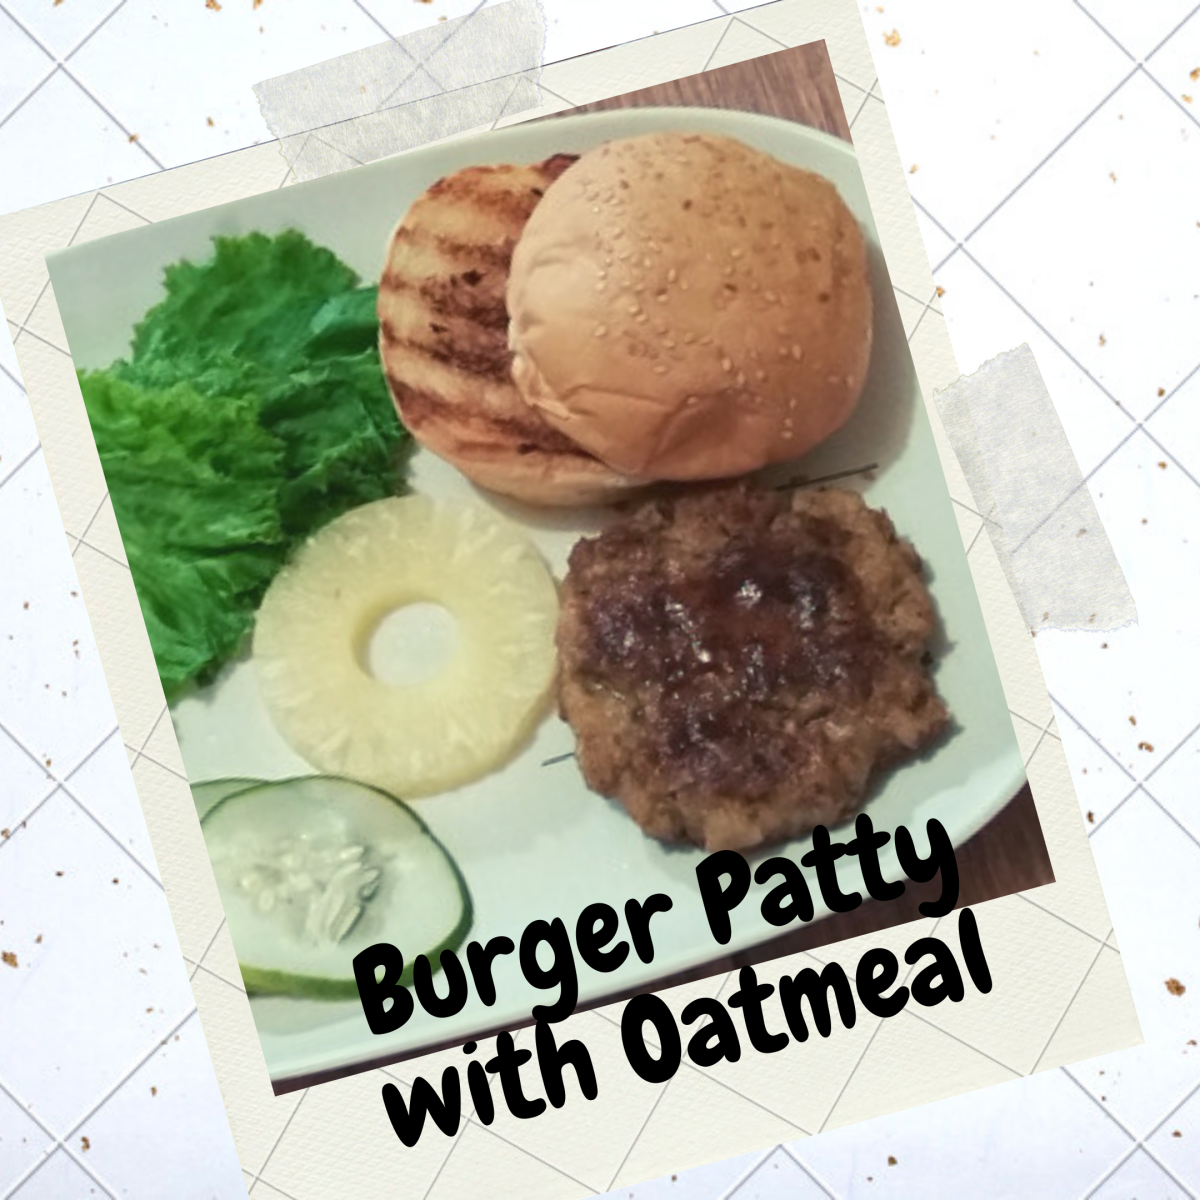 Learn how to make a beef burger patty with oatmeal